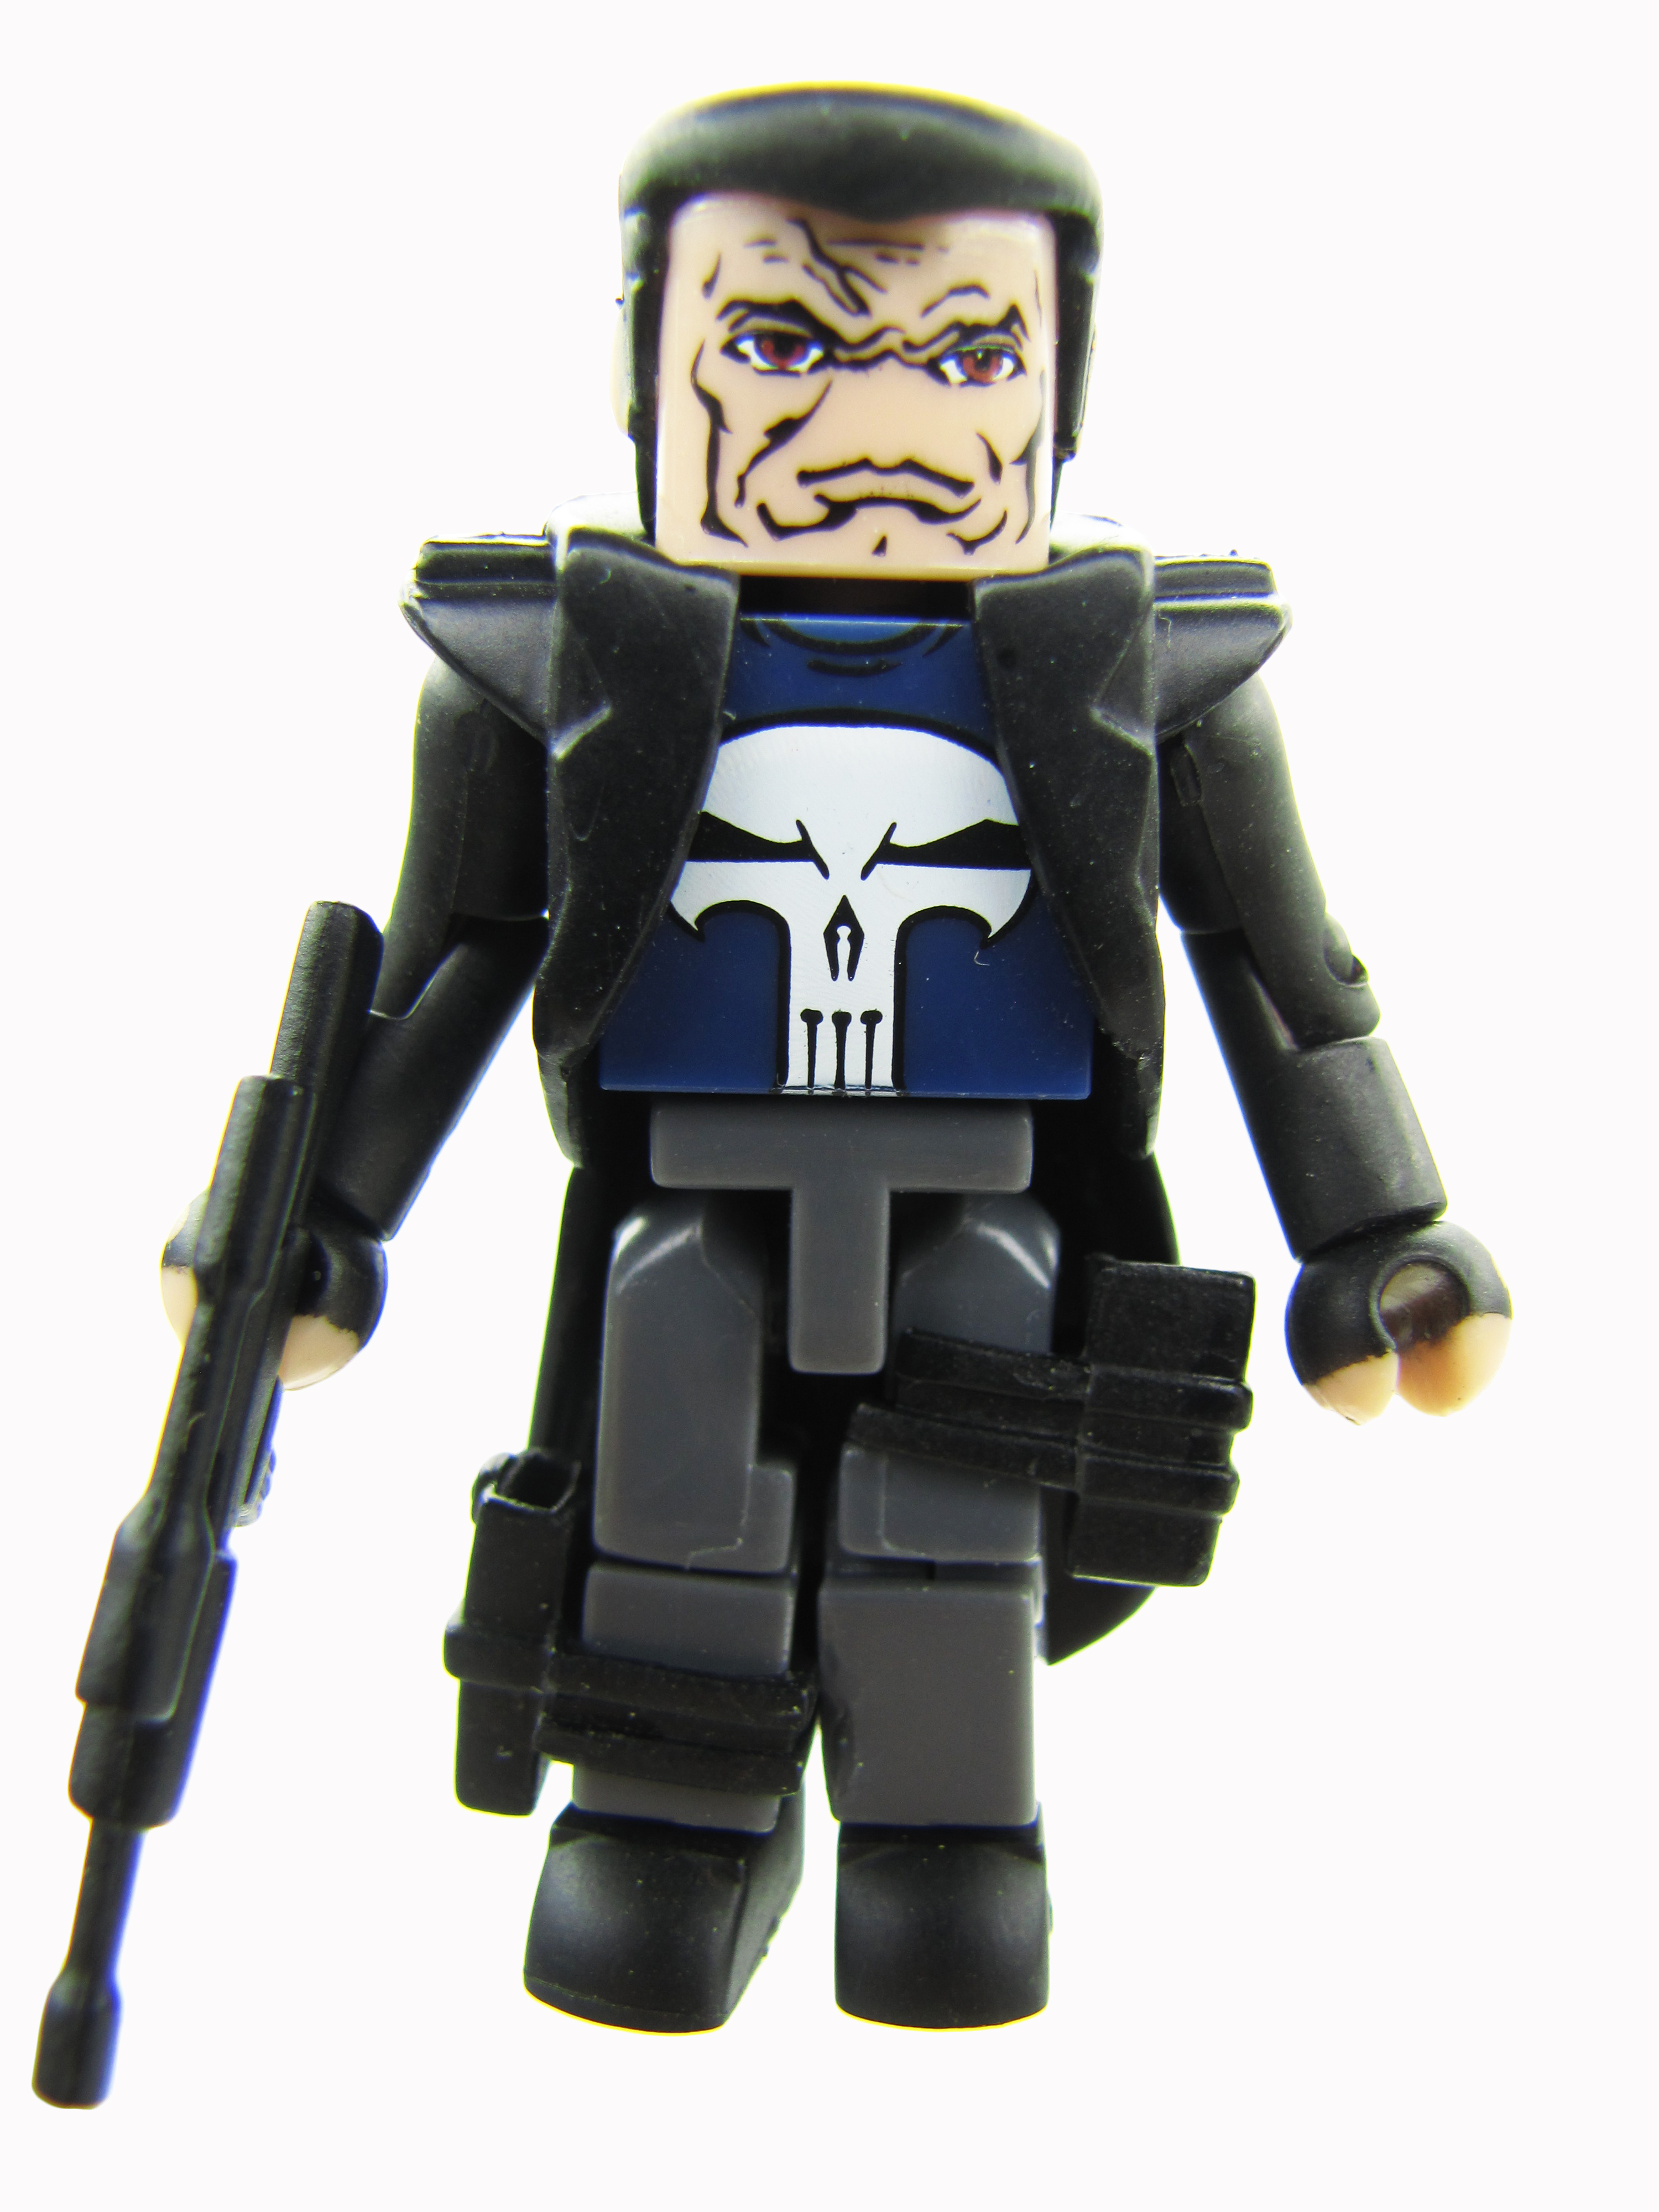 2005 Diamond Select Marvel Minimates ASSAULT PUNISHER Mint Condition